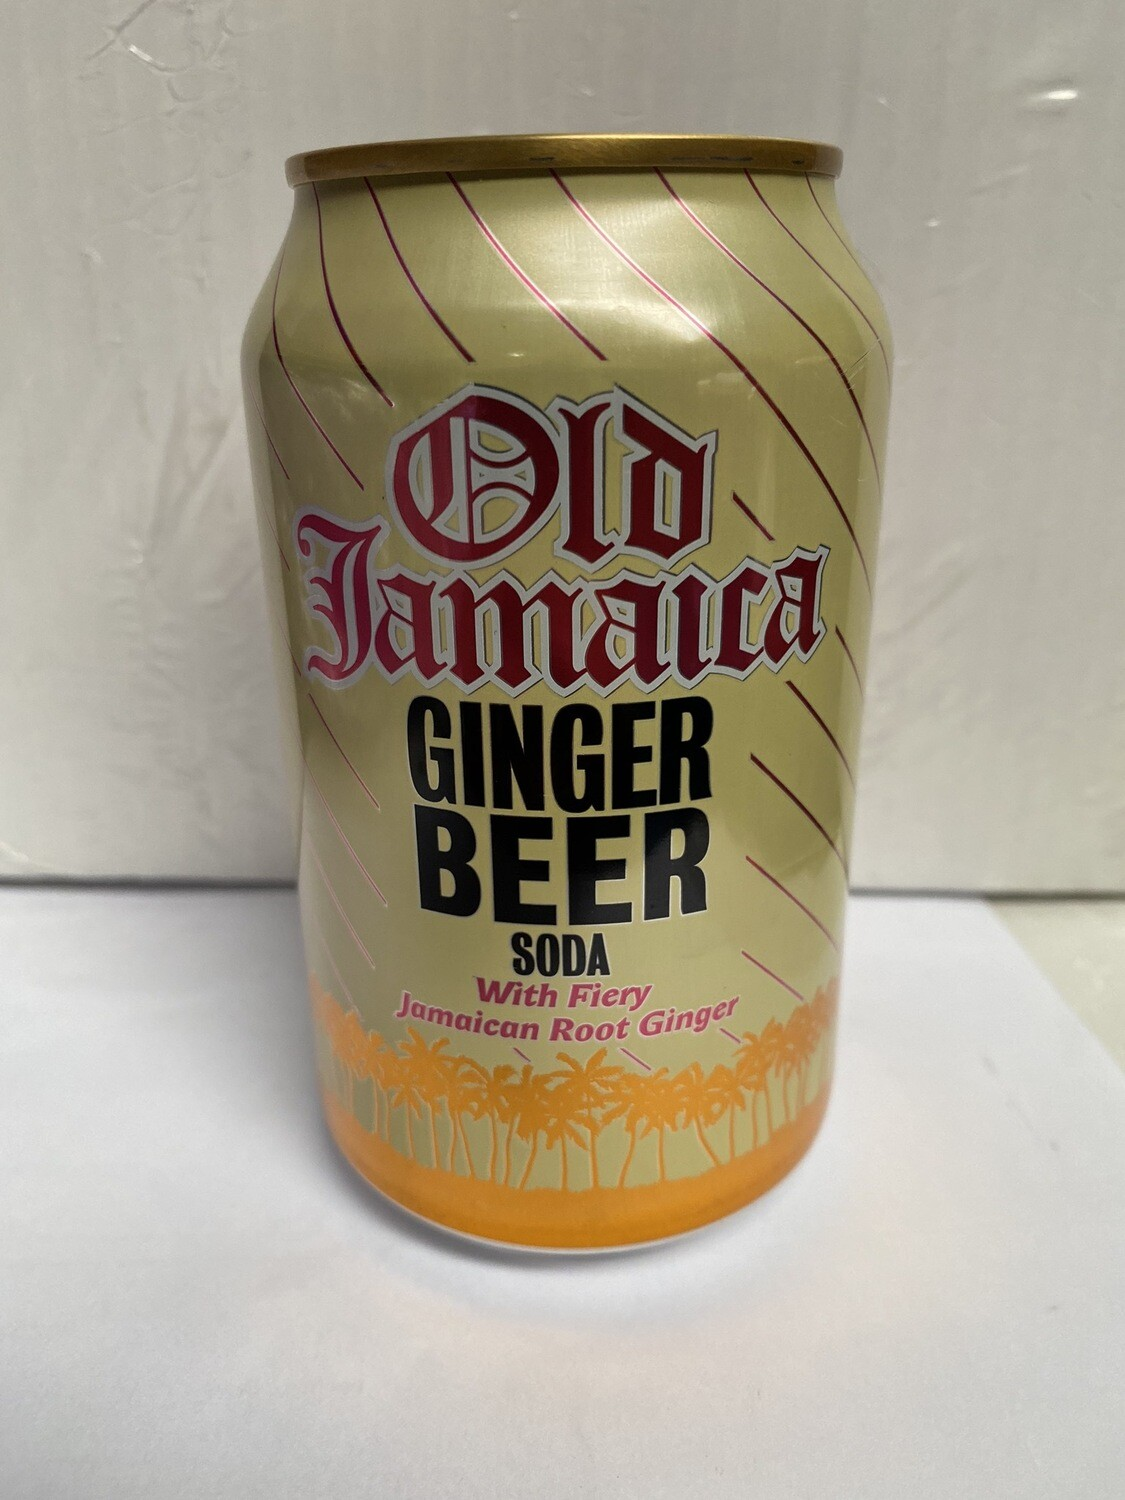 OLD JAMAICA GINGER BEER SODA (0% ALCOHOL)